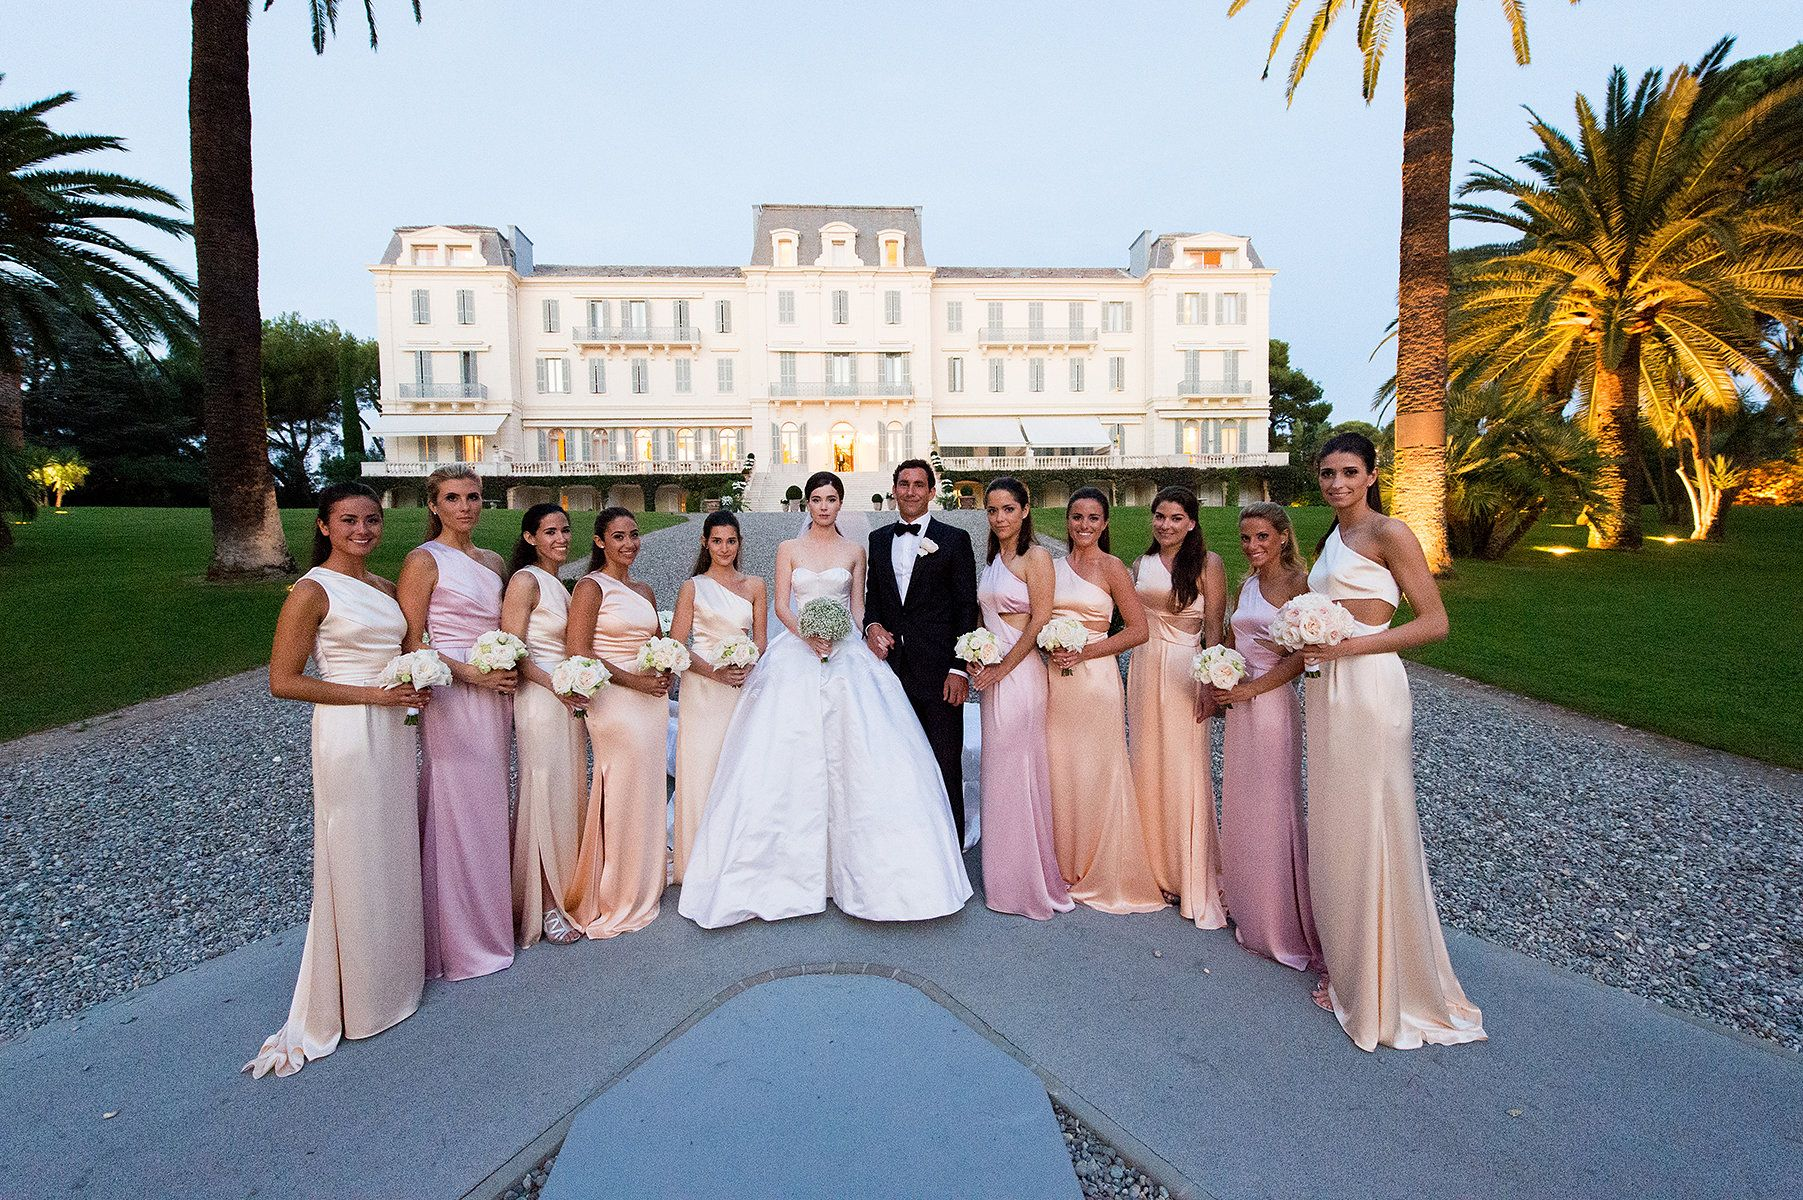 My bridesmaids looked insanely amazing in Prabal Gurung. I was so lucky to have this group of girls from London, from Princeton, and Teddy's sisters.